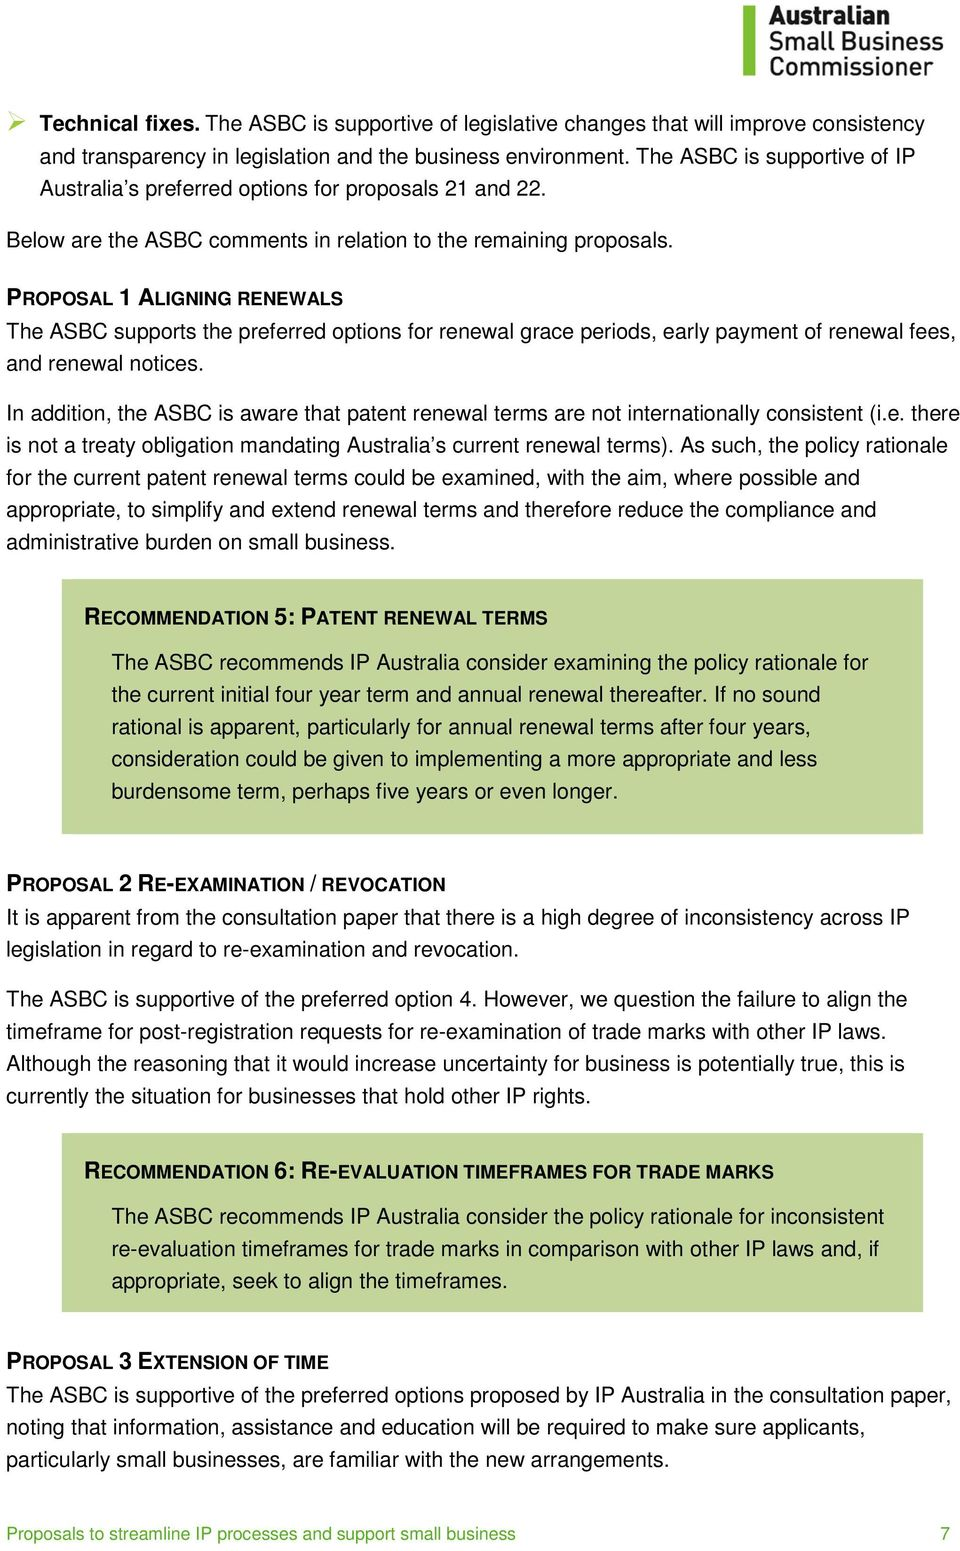 PROPOSAL 1 ALIGNING RENEWALS The ASBC supports the preferred options for renewal grace periods, early payment of renewal fees, and renewal notices.